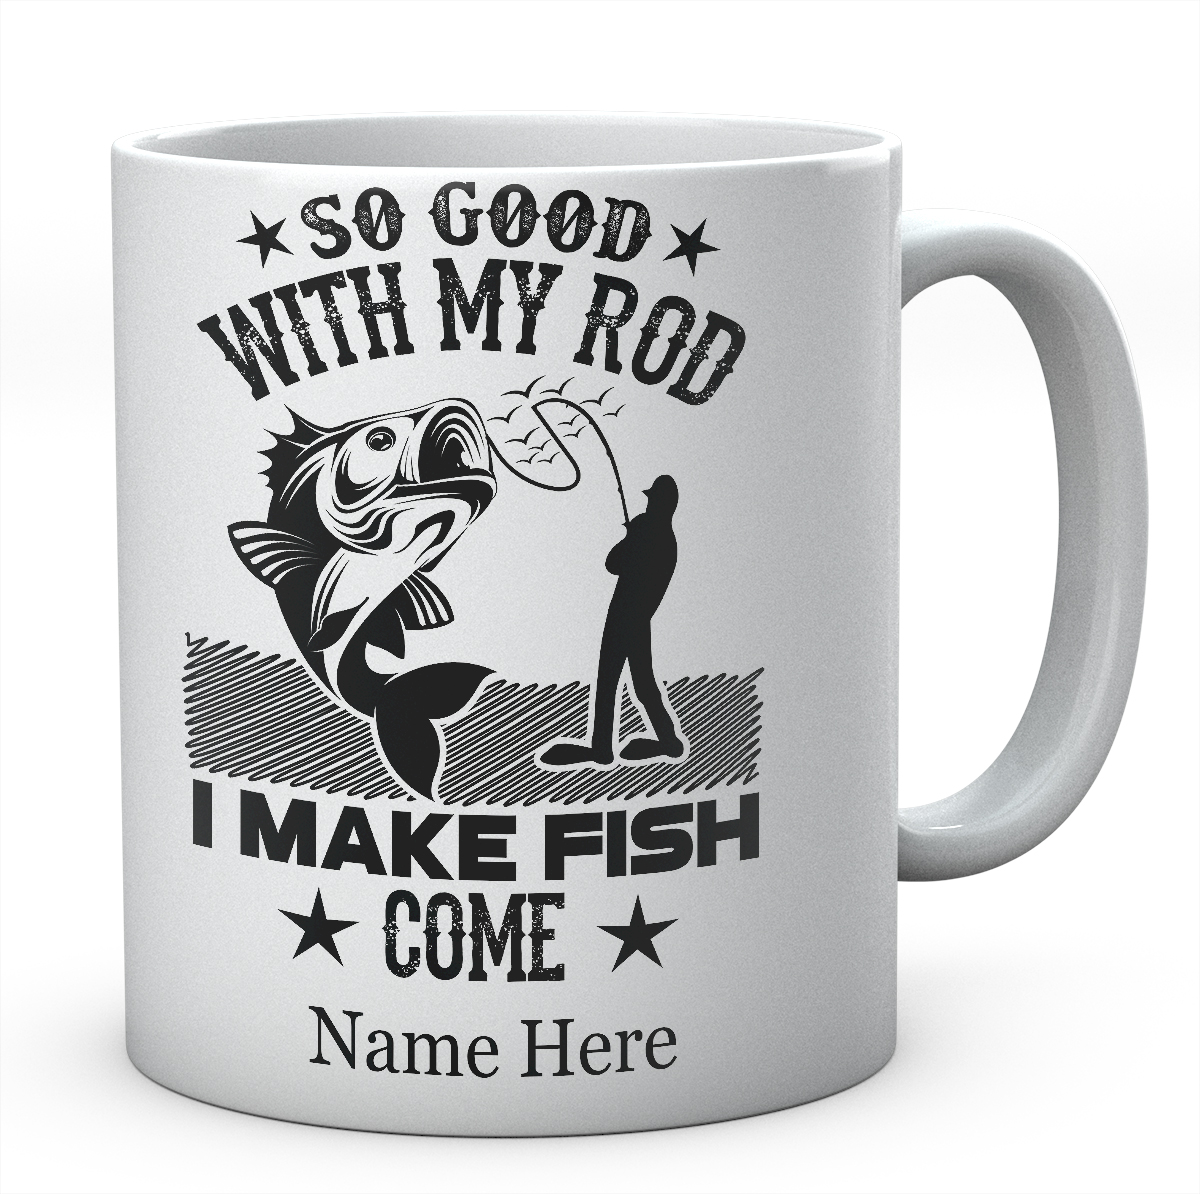 I'm So Good With My Rod, I Make Fish Come-Personalised Mug